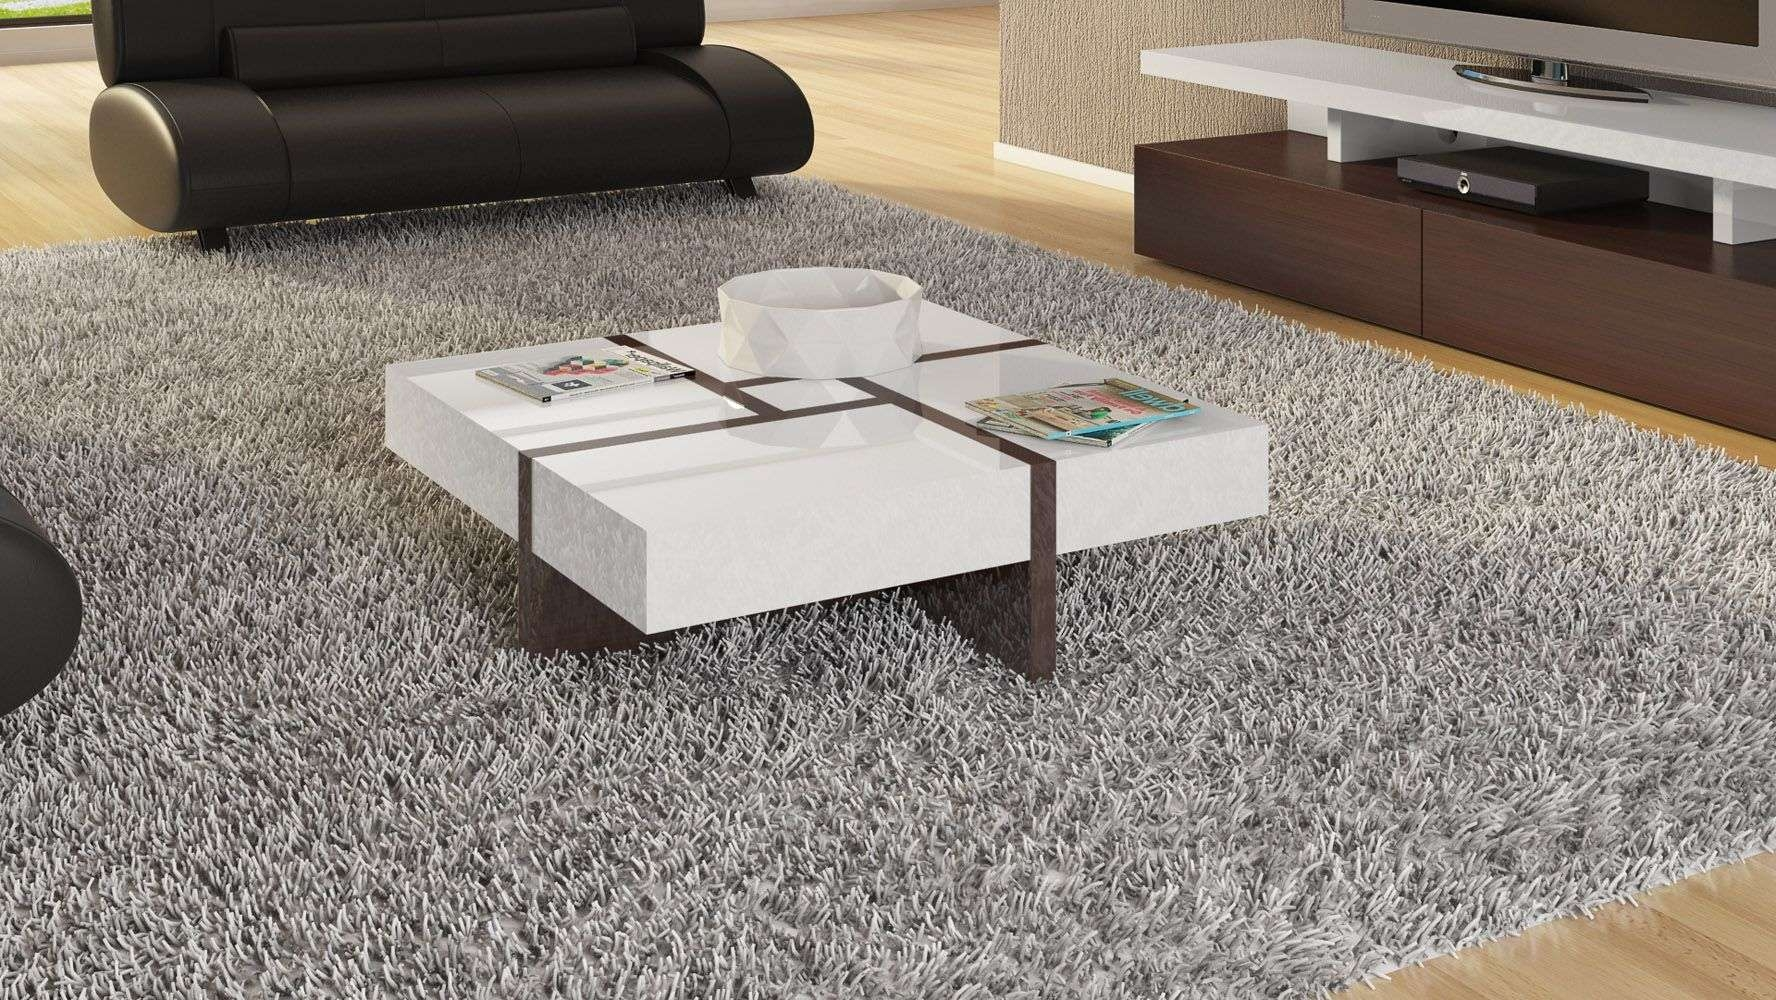 Mcintosh High Gloss Coffee Table With Storage – White Square Intended For Favorite High Gloss Coffee Tables (View 9 of 20)